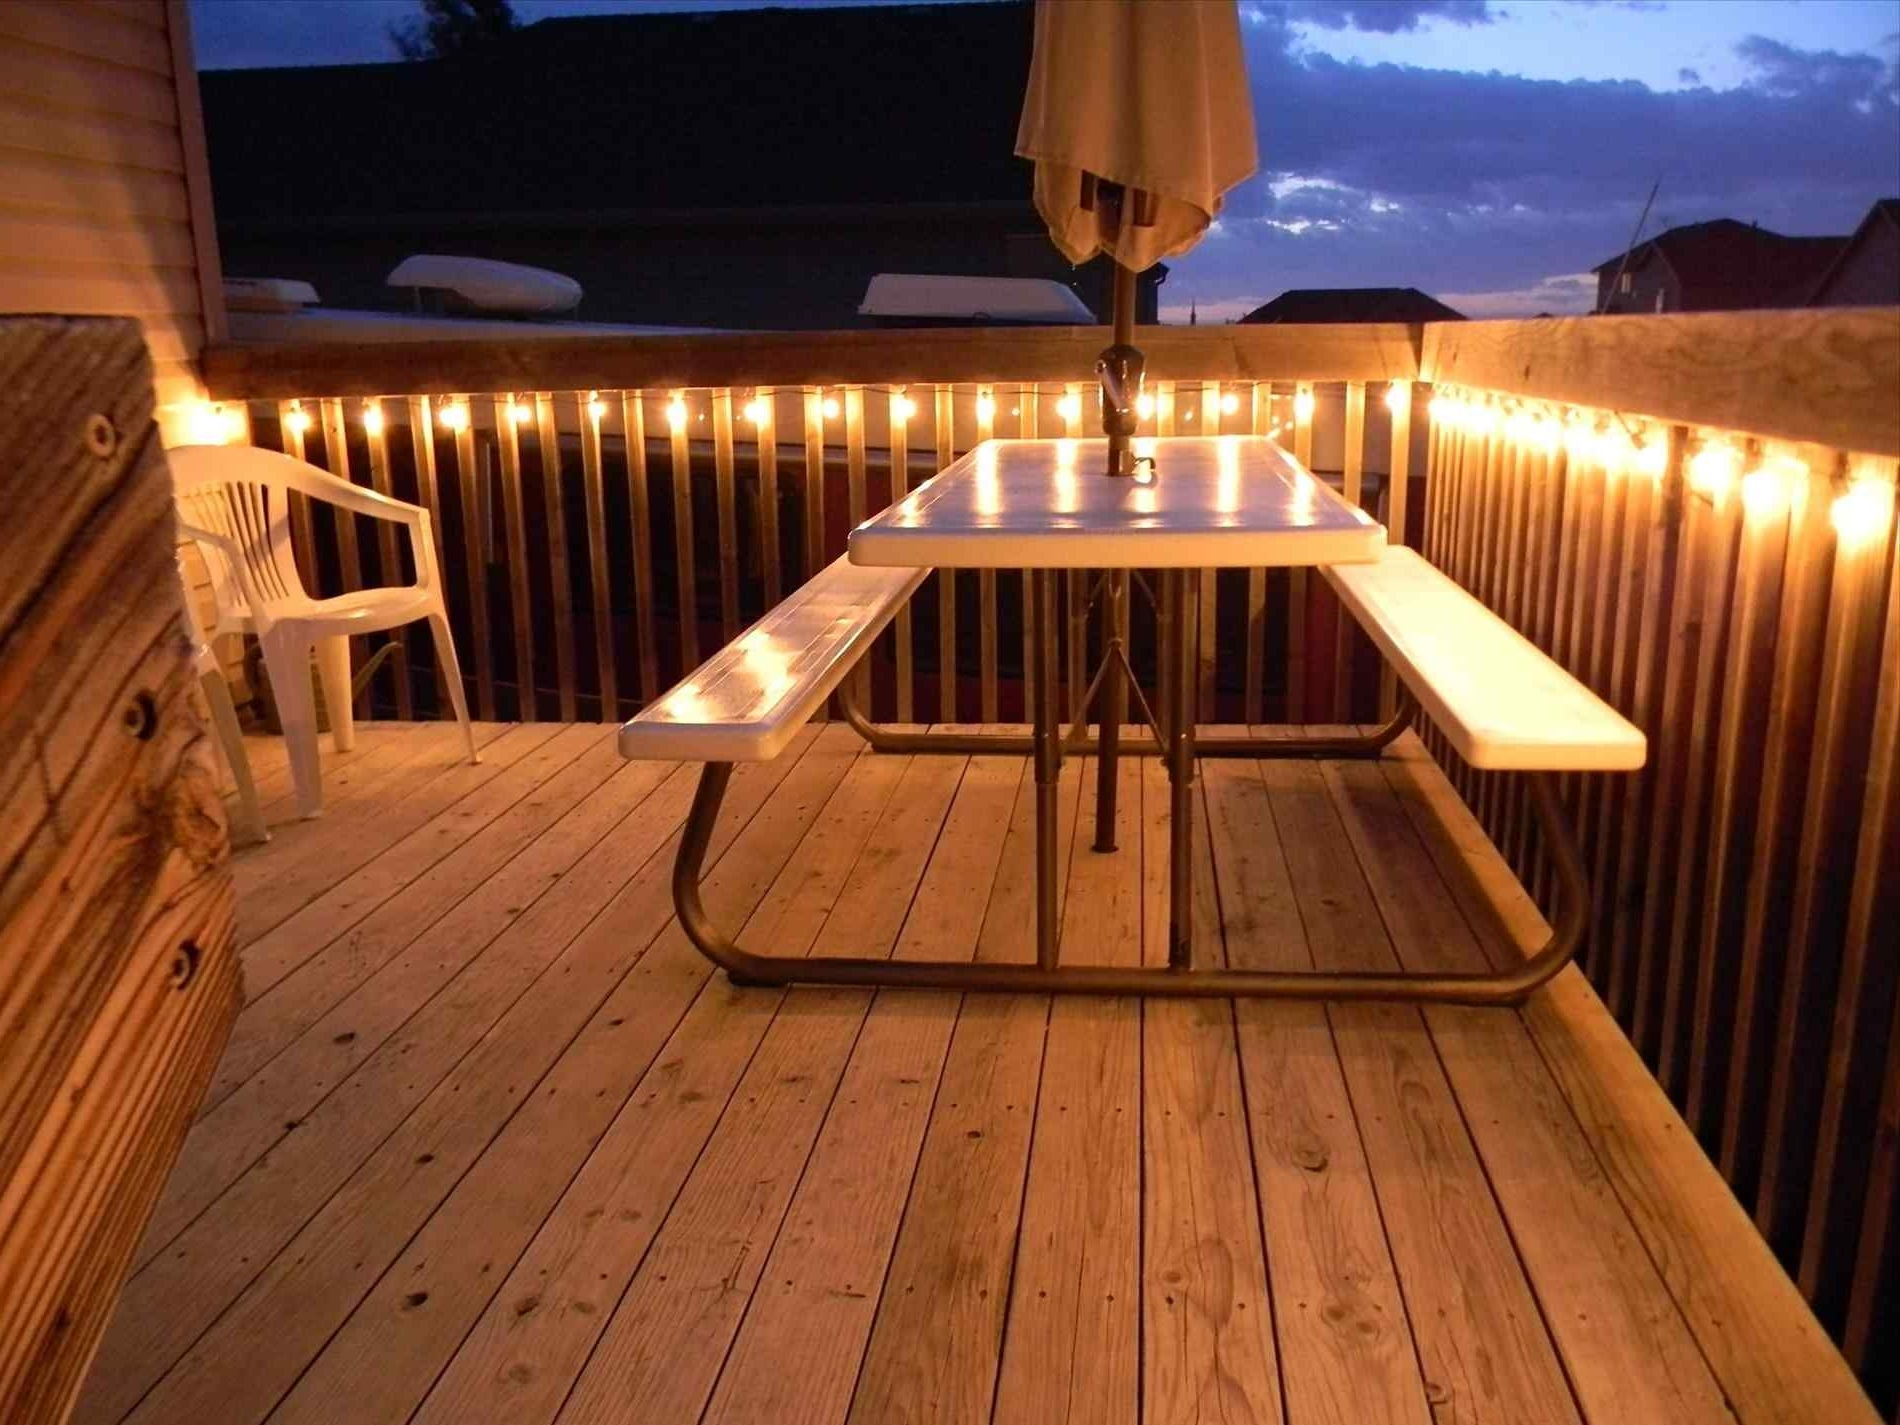 Outdoor Hanging Deck Lights In Most Recent The Images Collection Of Ideas For Before Next Spring Season Deck (View 10 of 20)